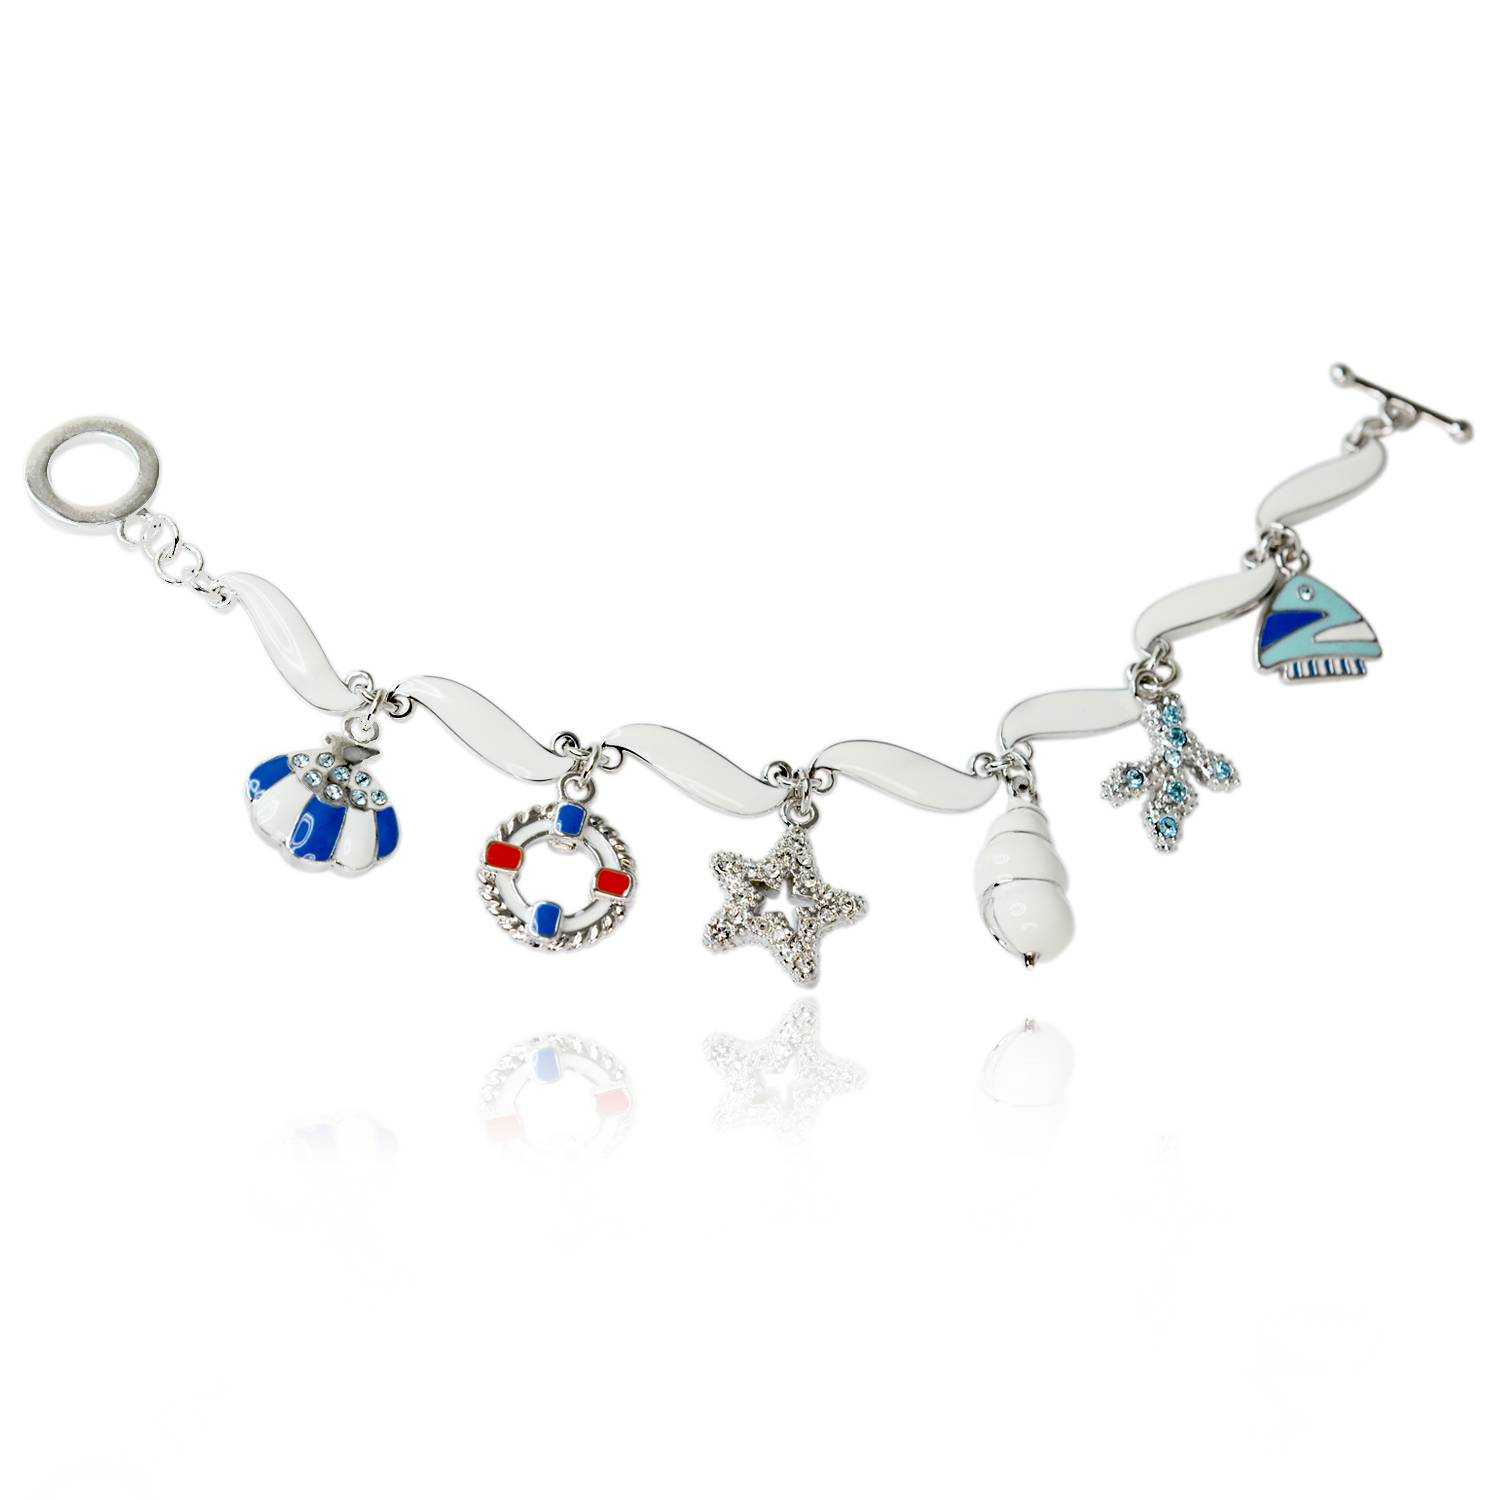 Ocean star bracelet-platinum plating metal bangle with enamel